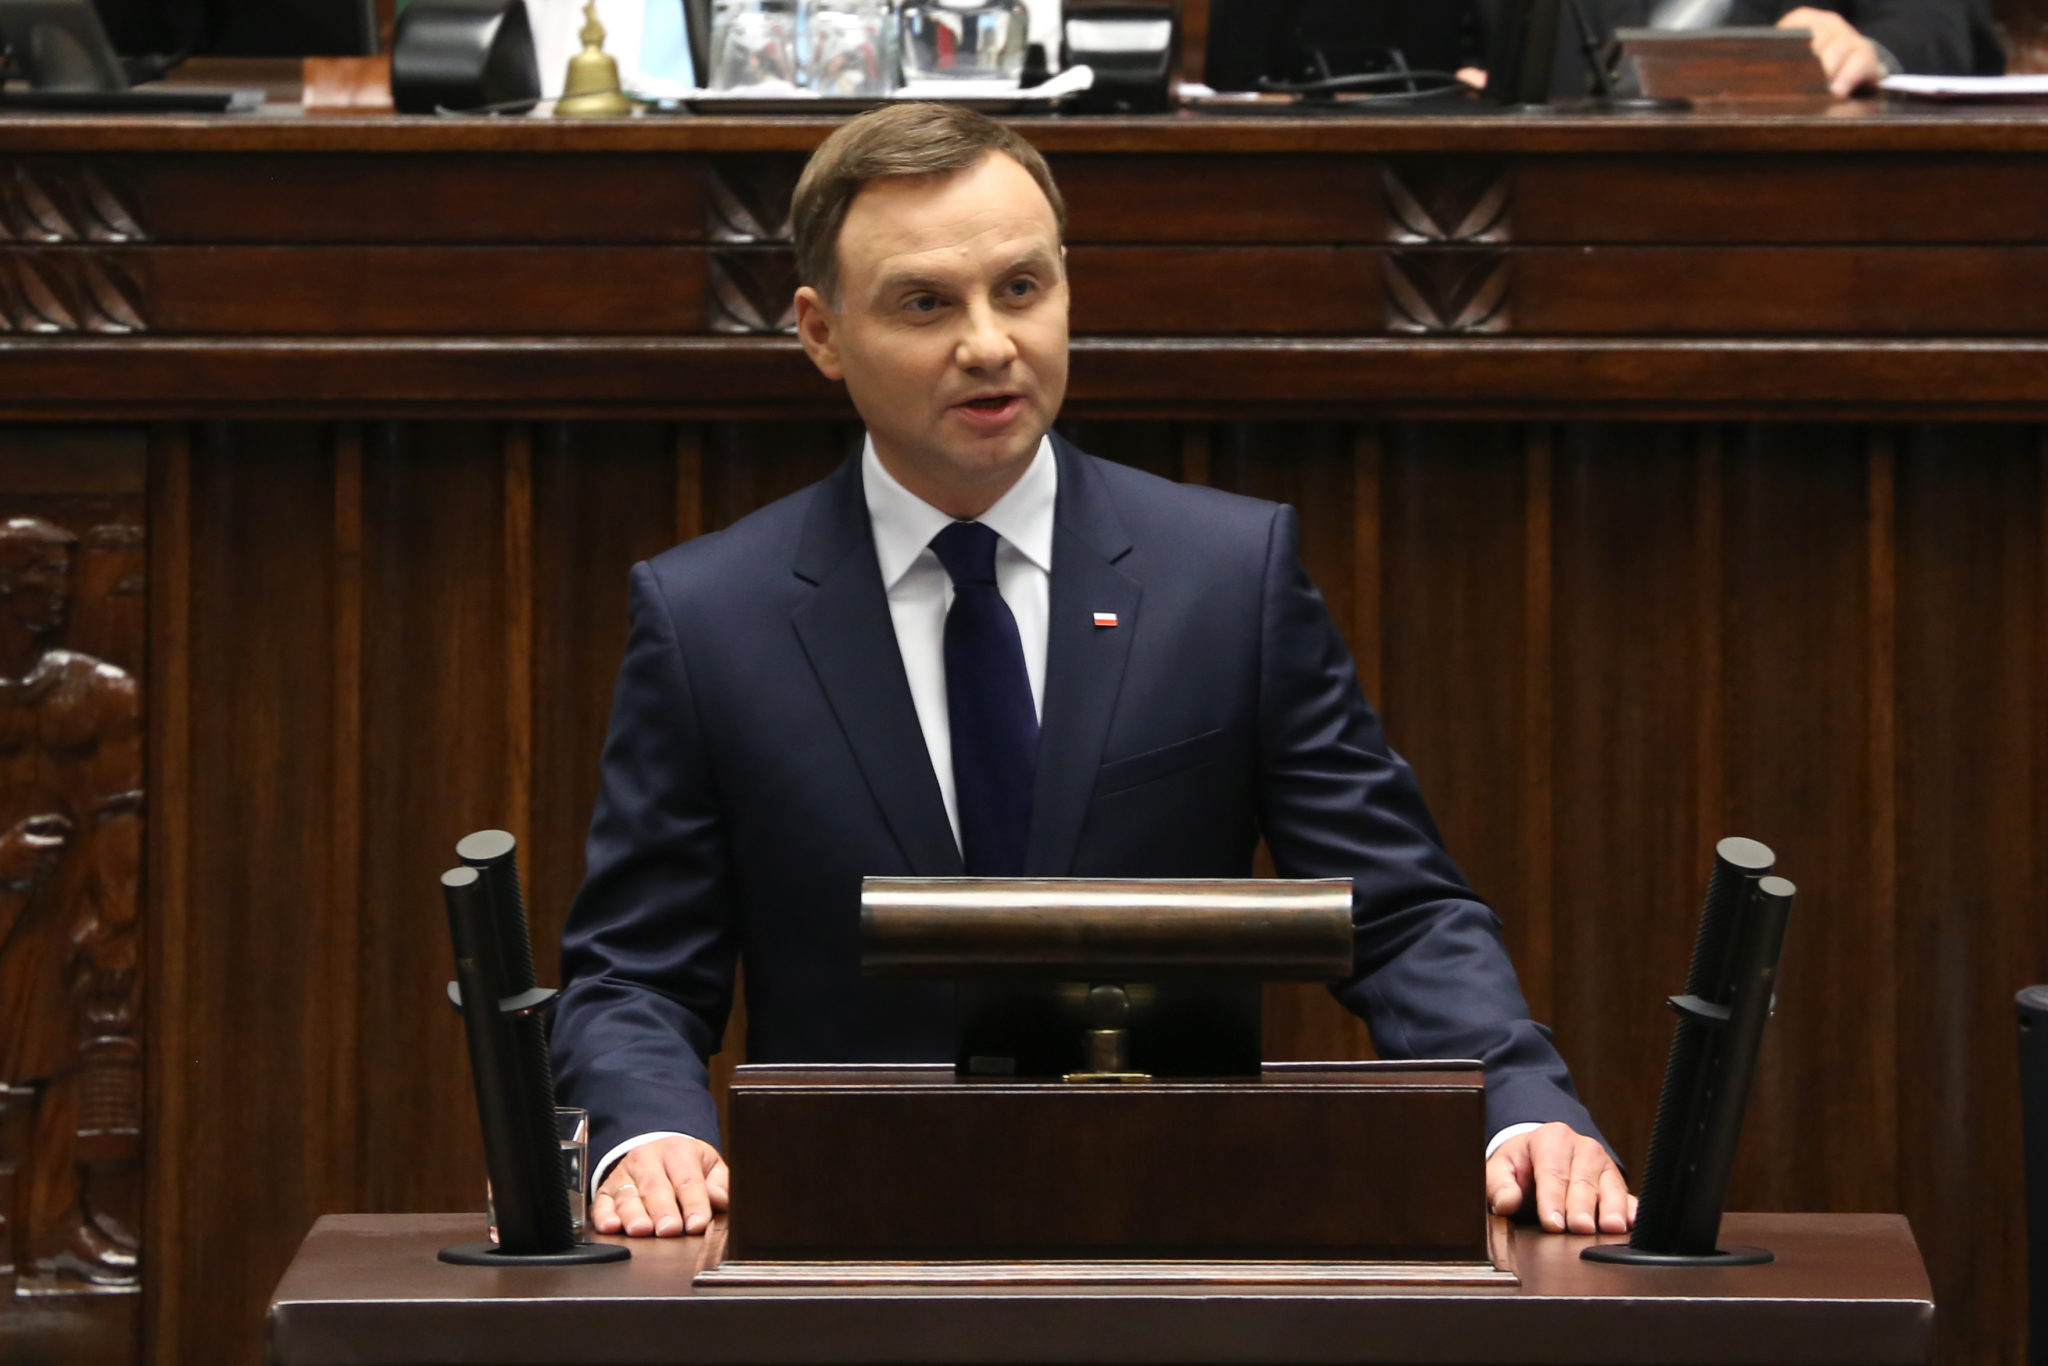 Polish President Andrzej Duda shocked the nation and world by vetoing a controversial bill which would have placed the Supreme Court under greater government control